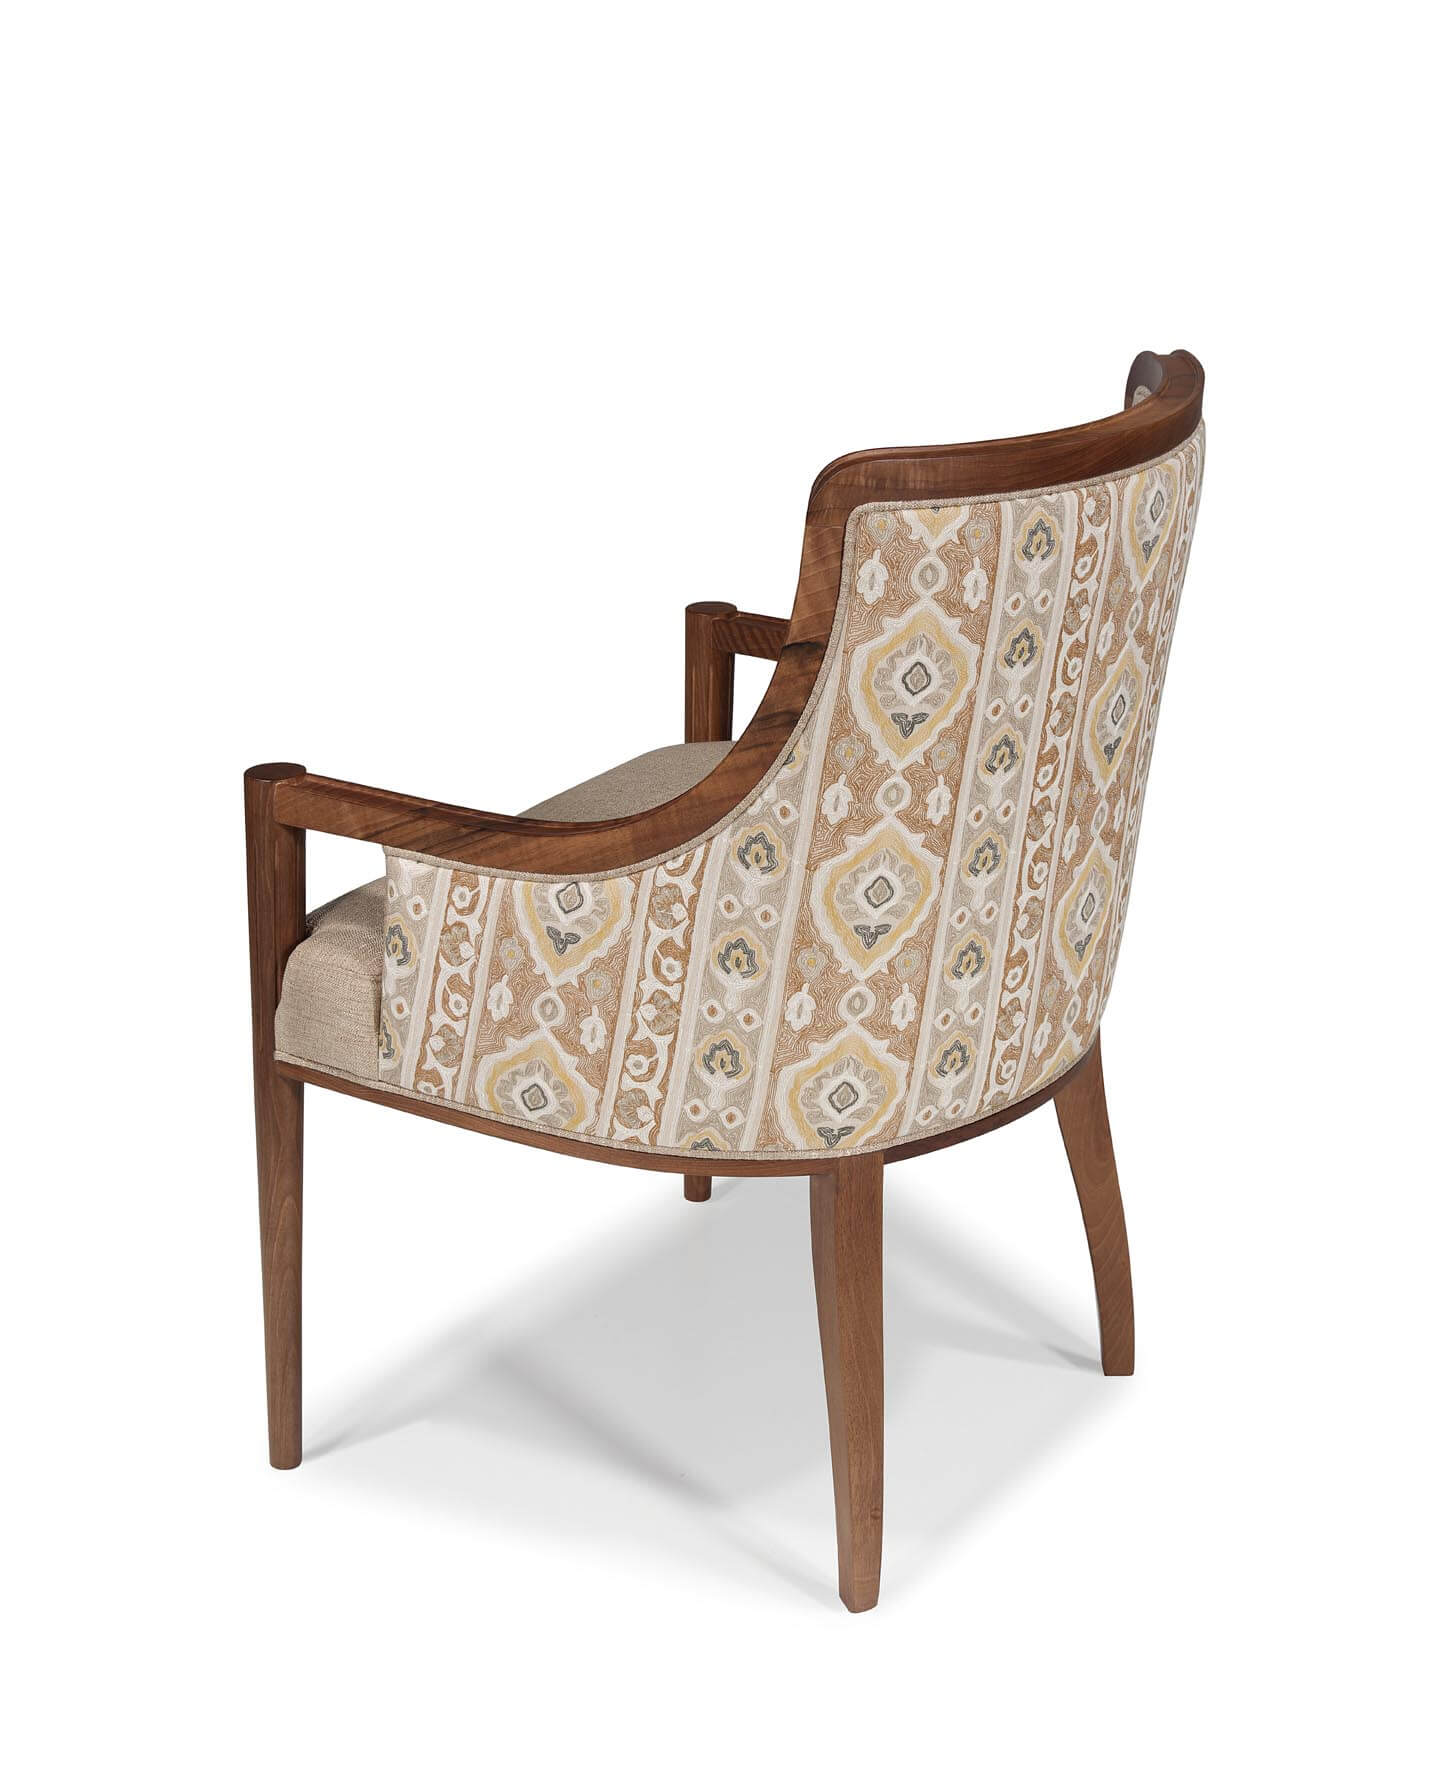 luxury armchair, Portuguese furniture maker, upholstery items